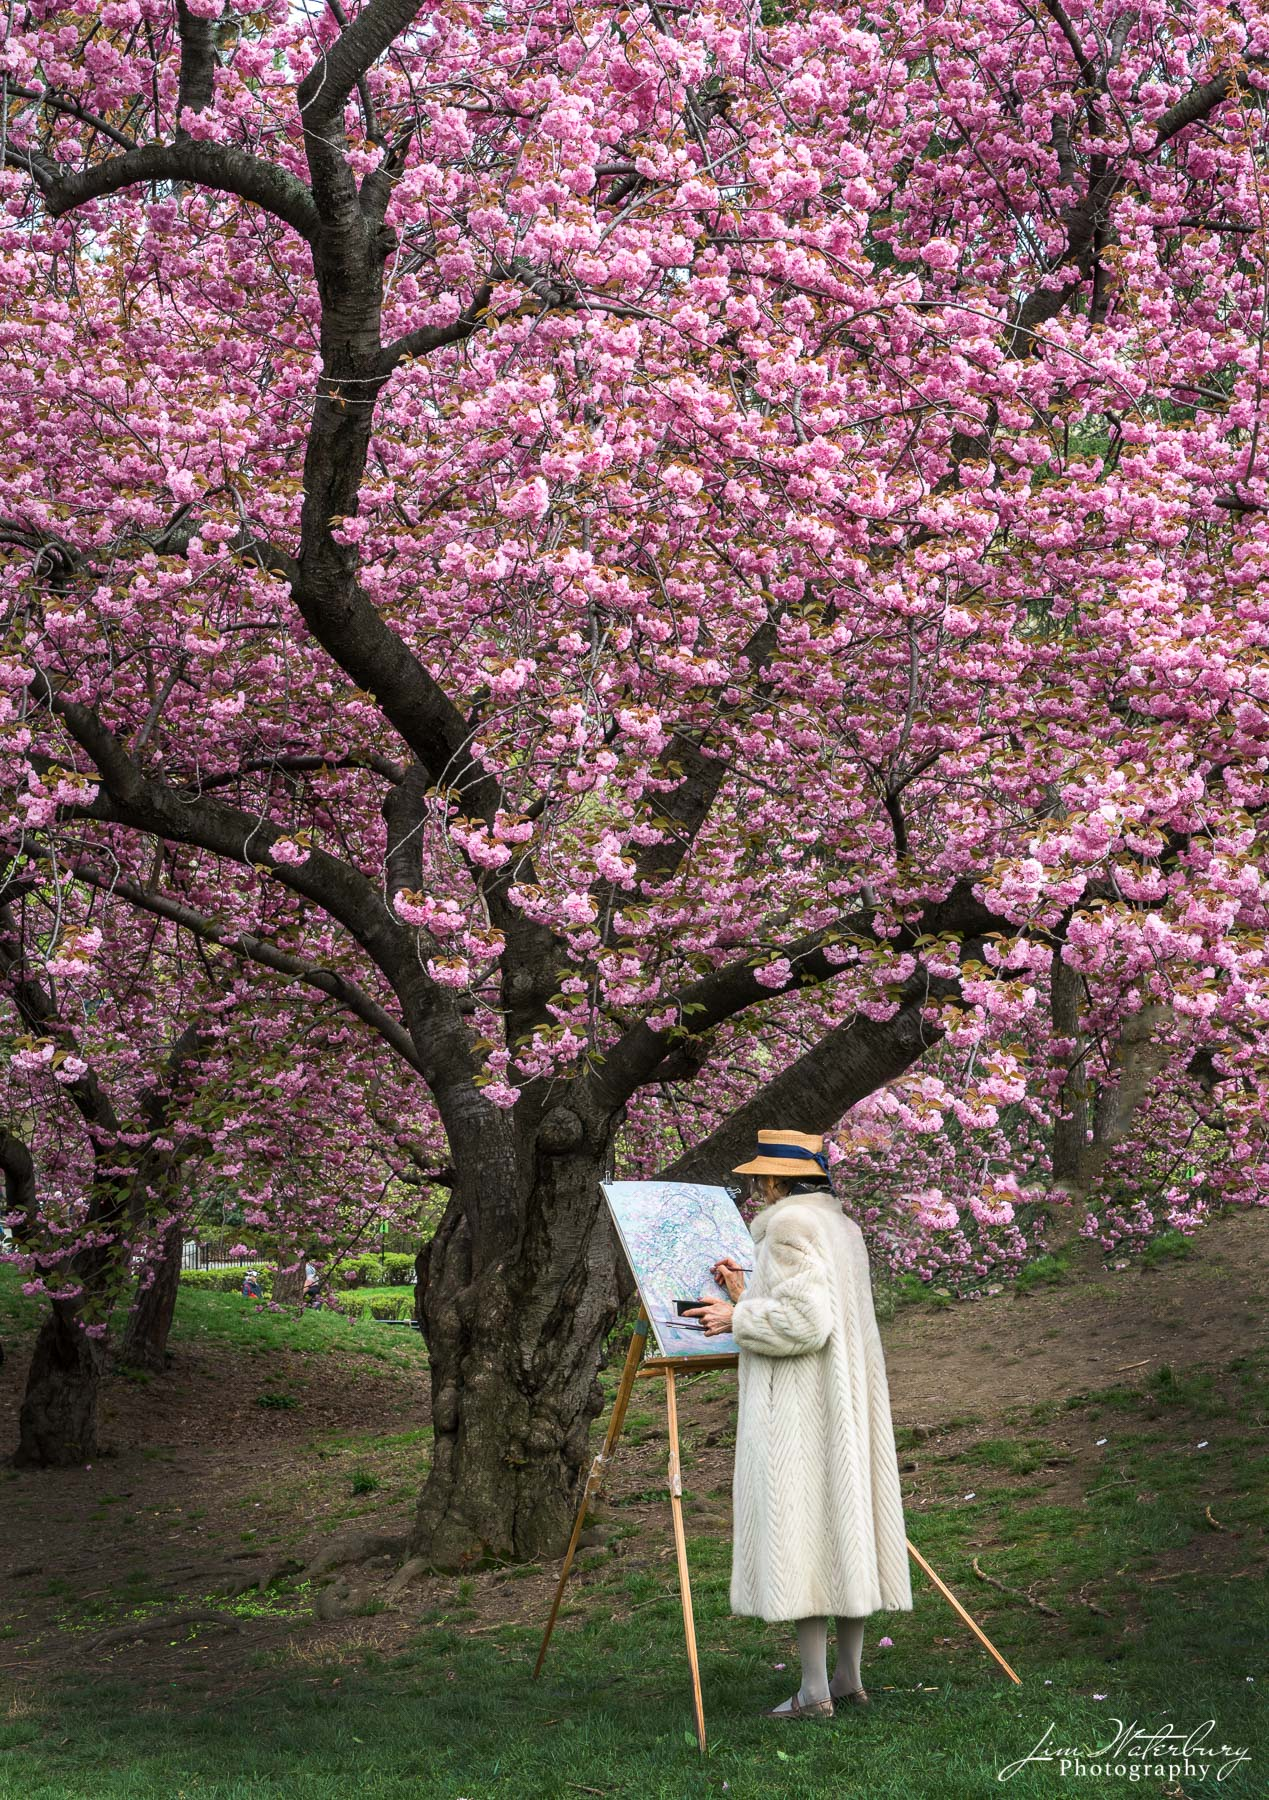 Artist painting under a flowering cherry tree in the Spring in Central Park, New York City